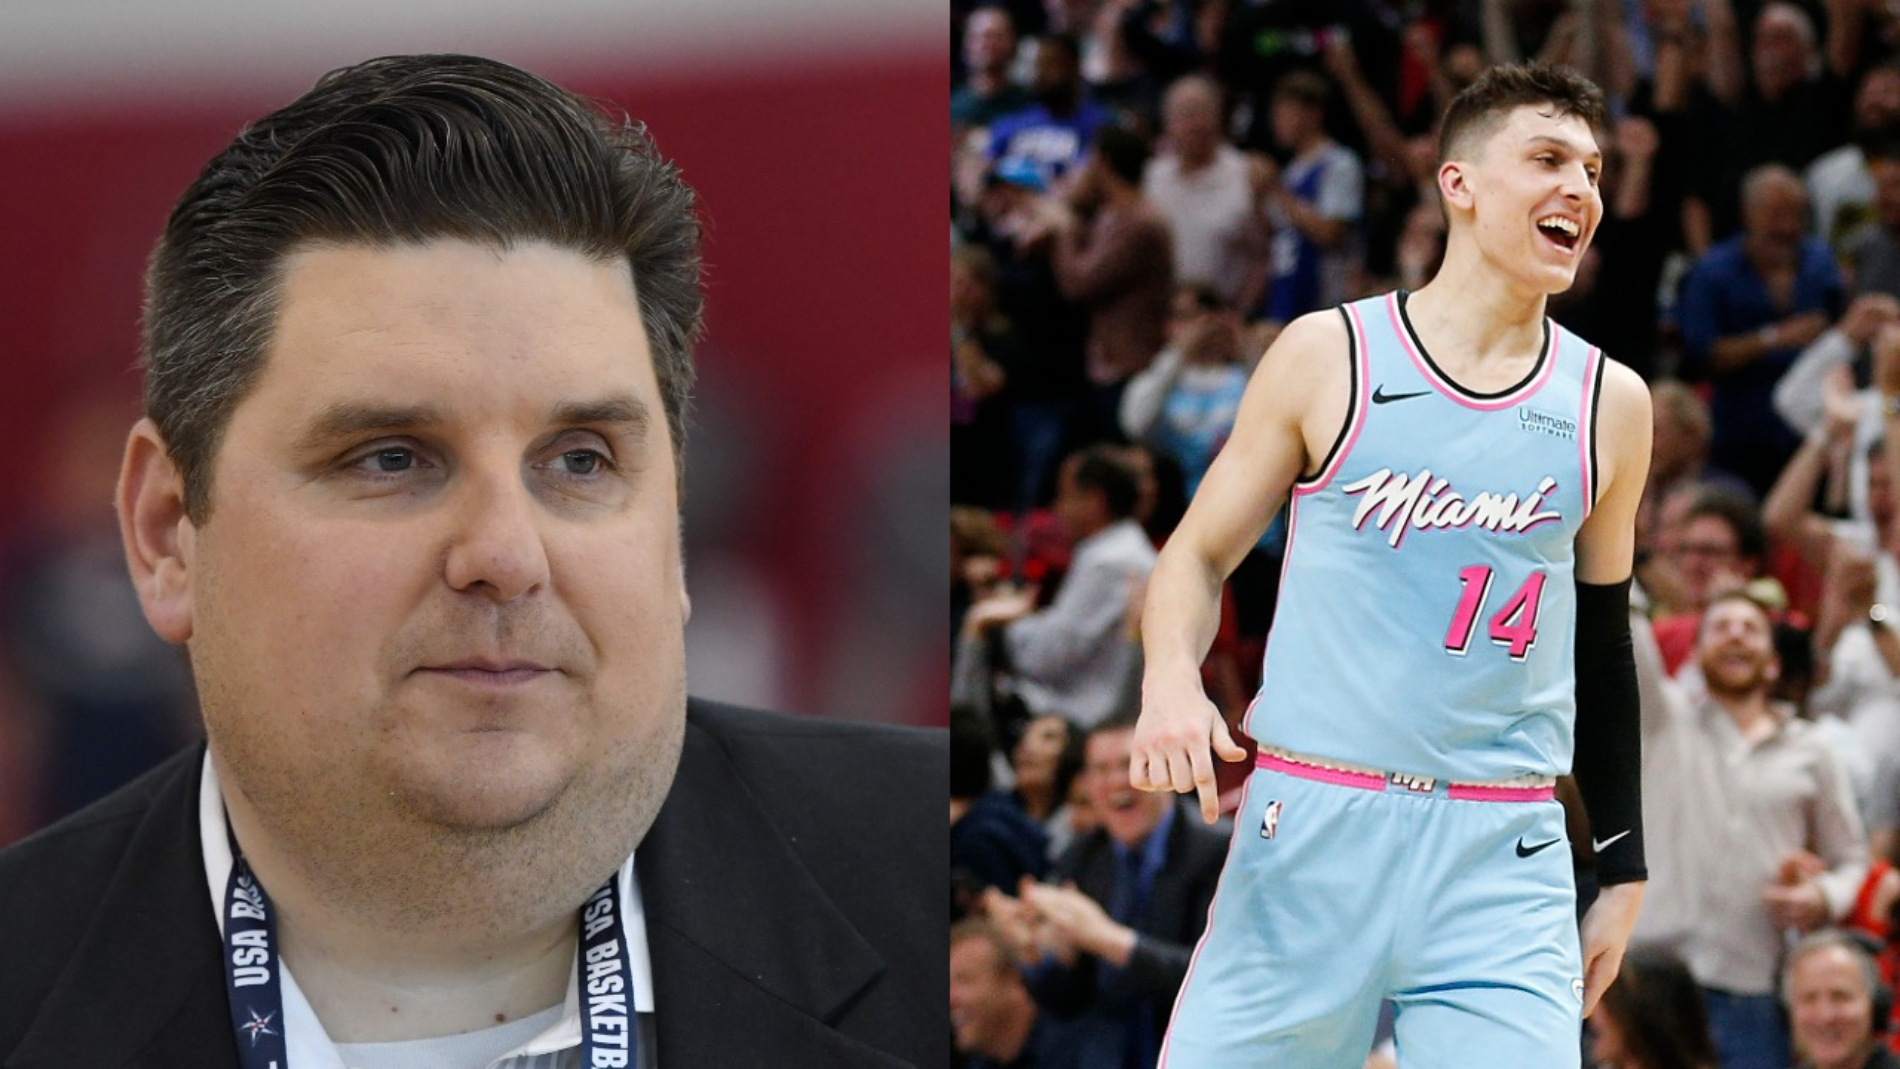 ESPN's Brian Windhorst recently looked at Miami Heat rookie Tyler Herro's dating life when trying to prove his high confidence level.